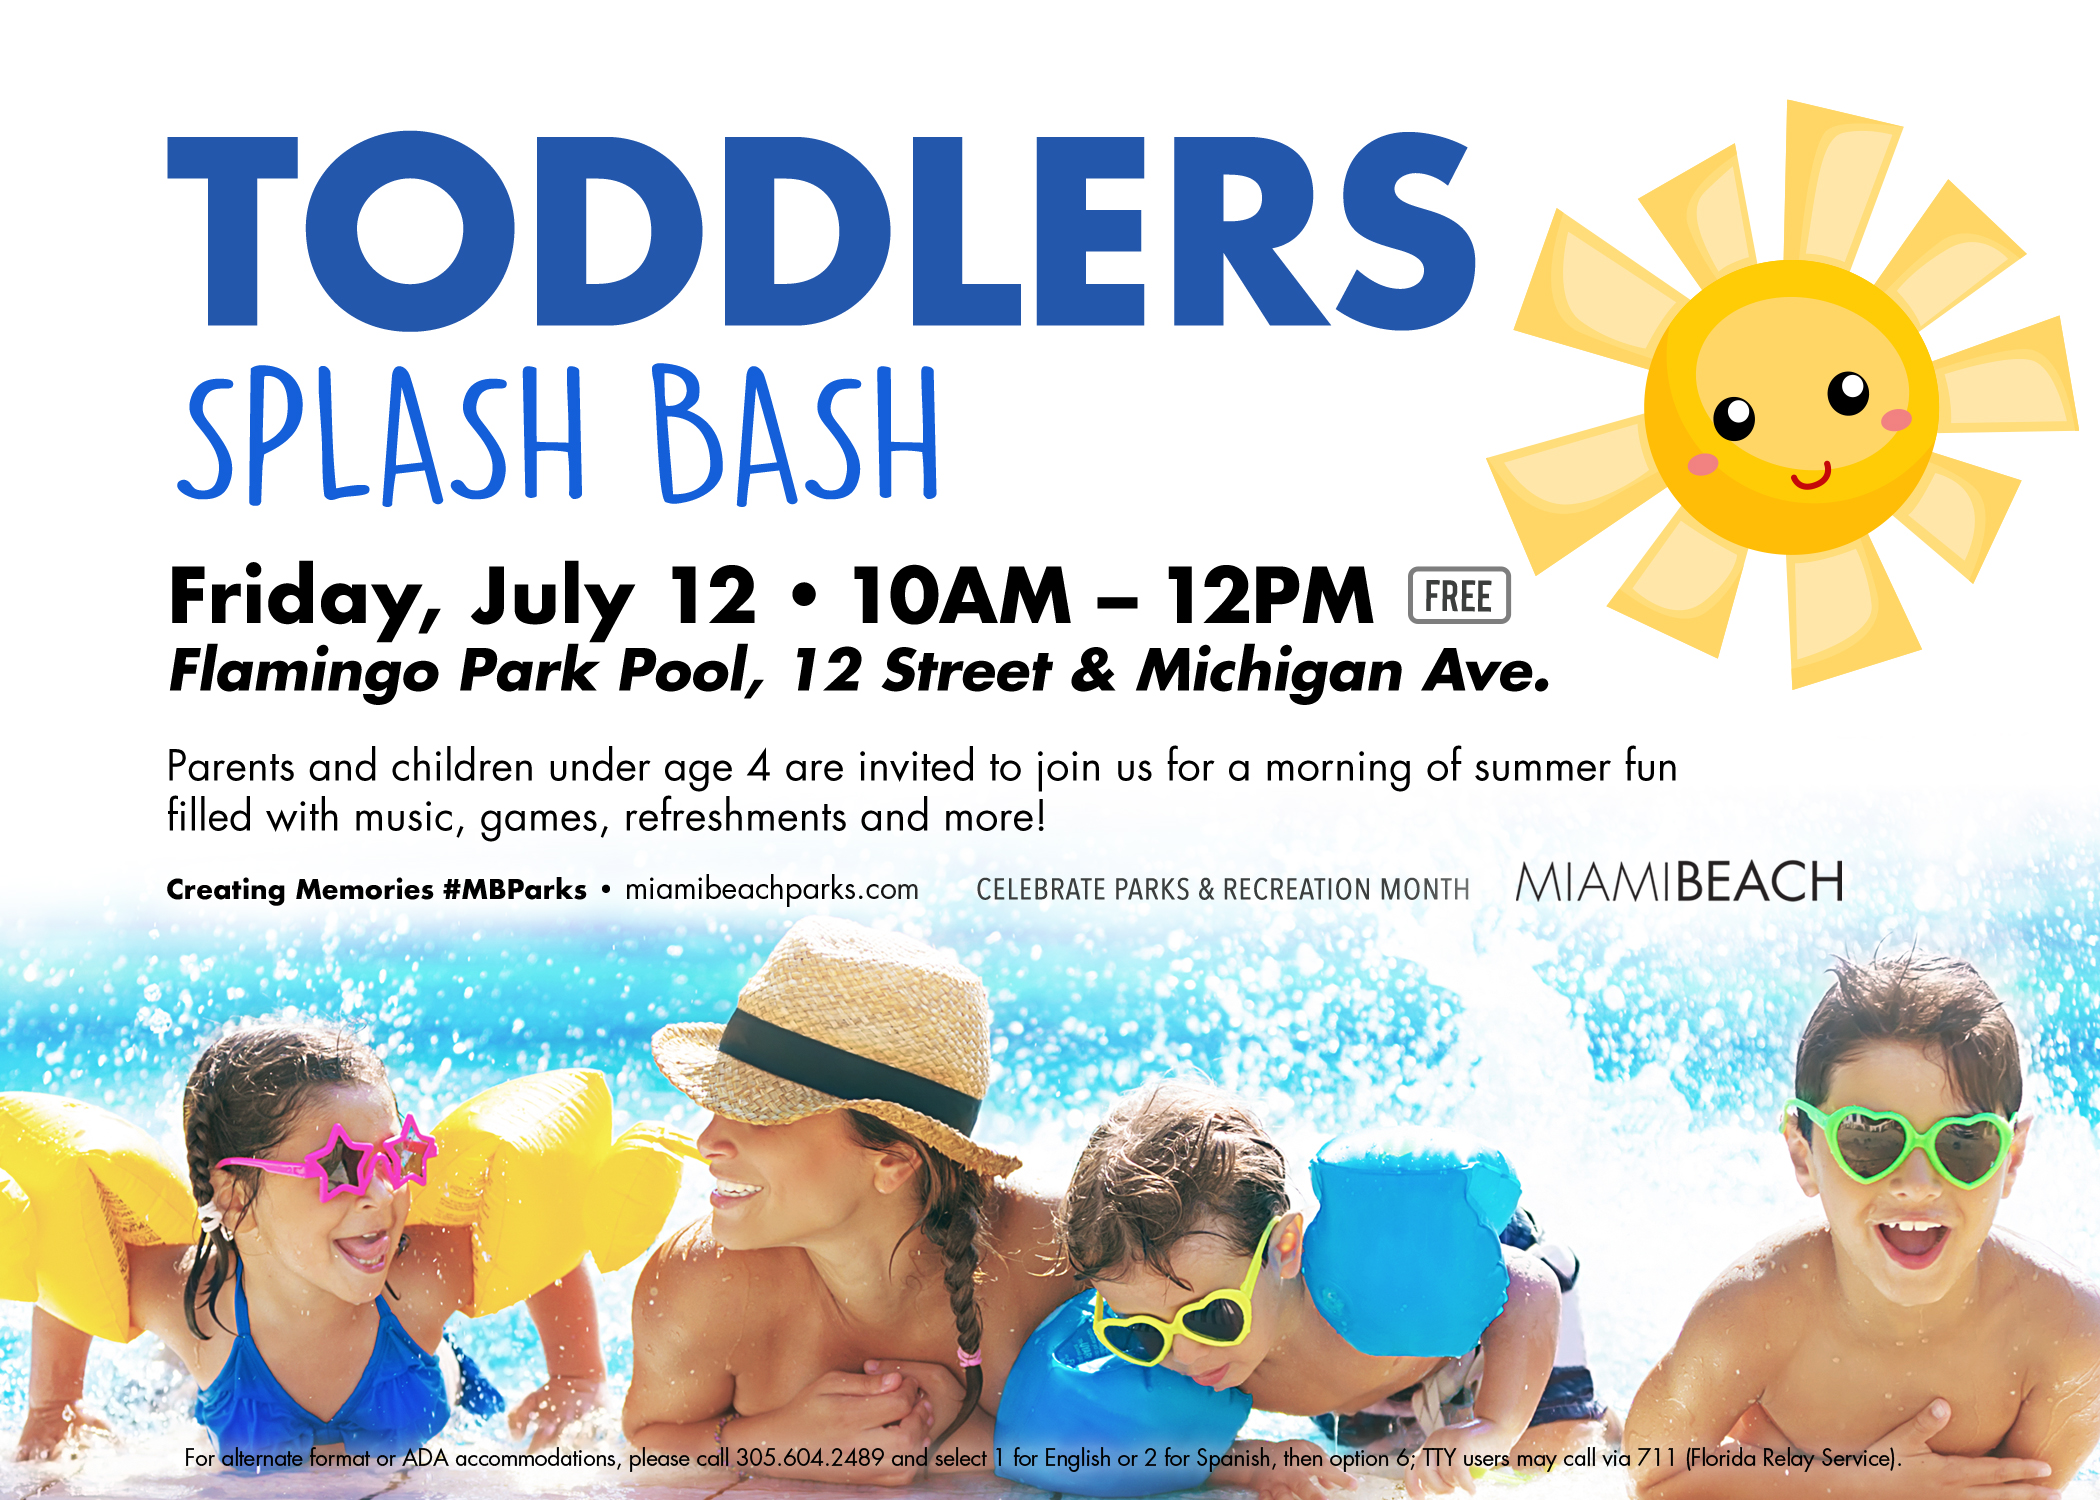 Splash Bash for Toddlers